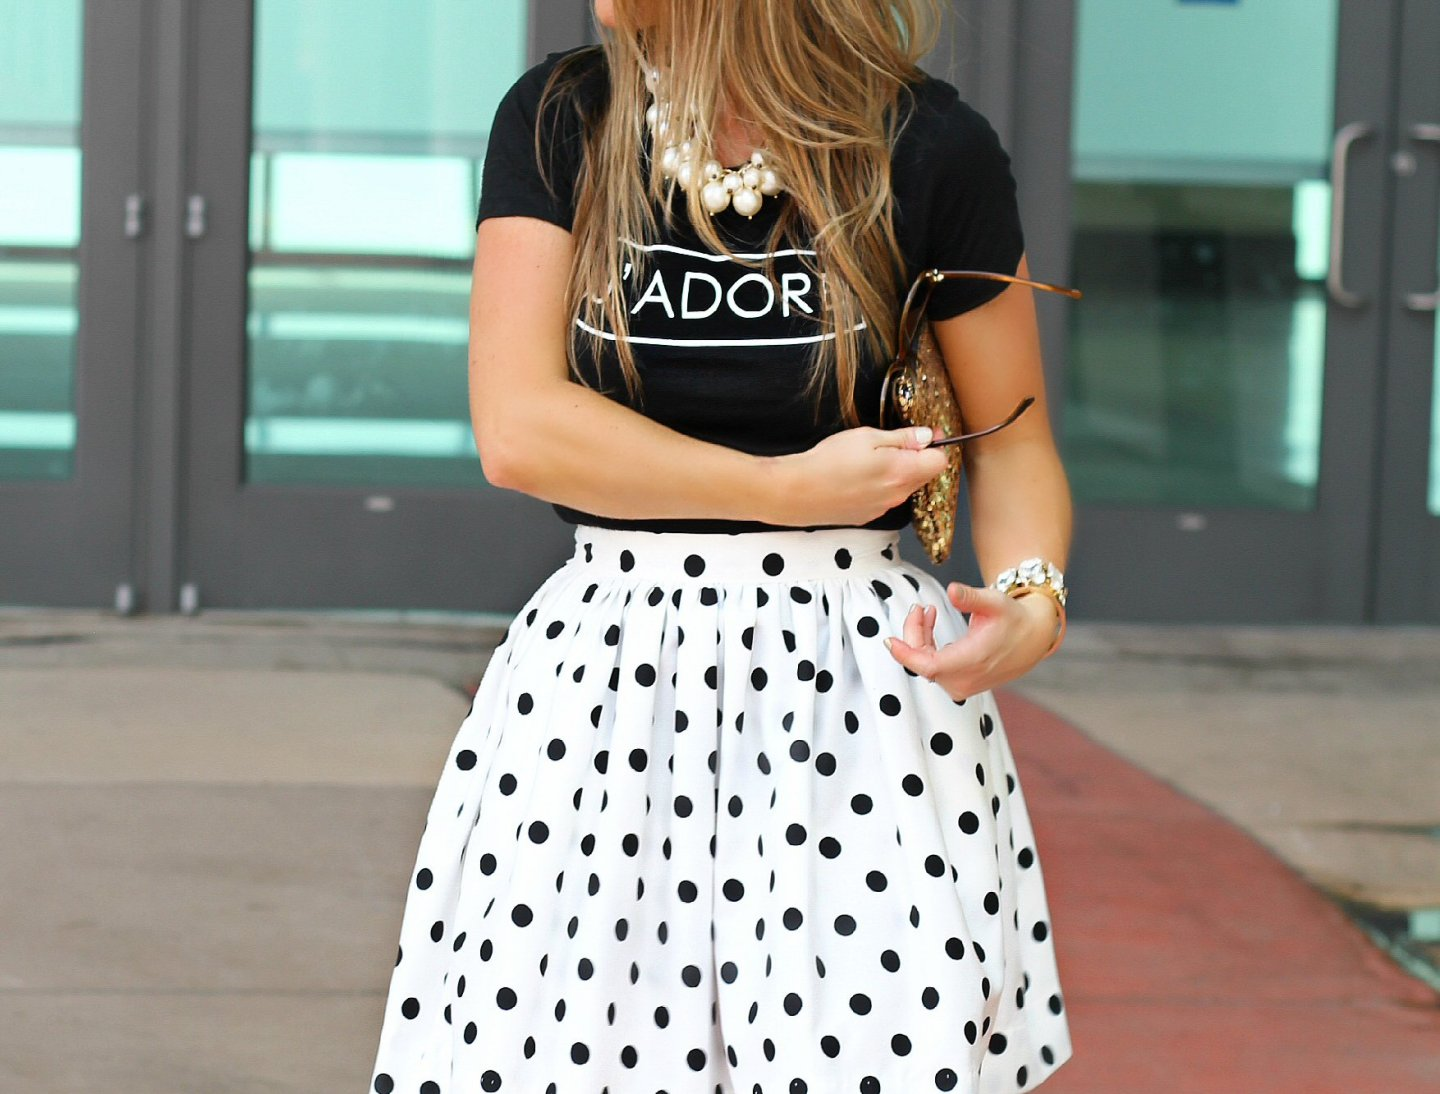 Polka dots and graphic tees